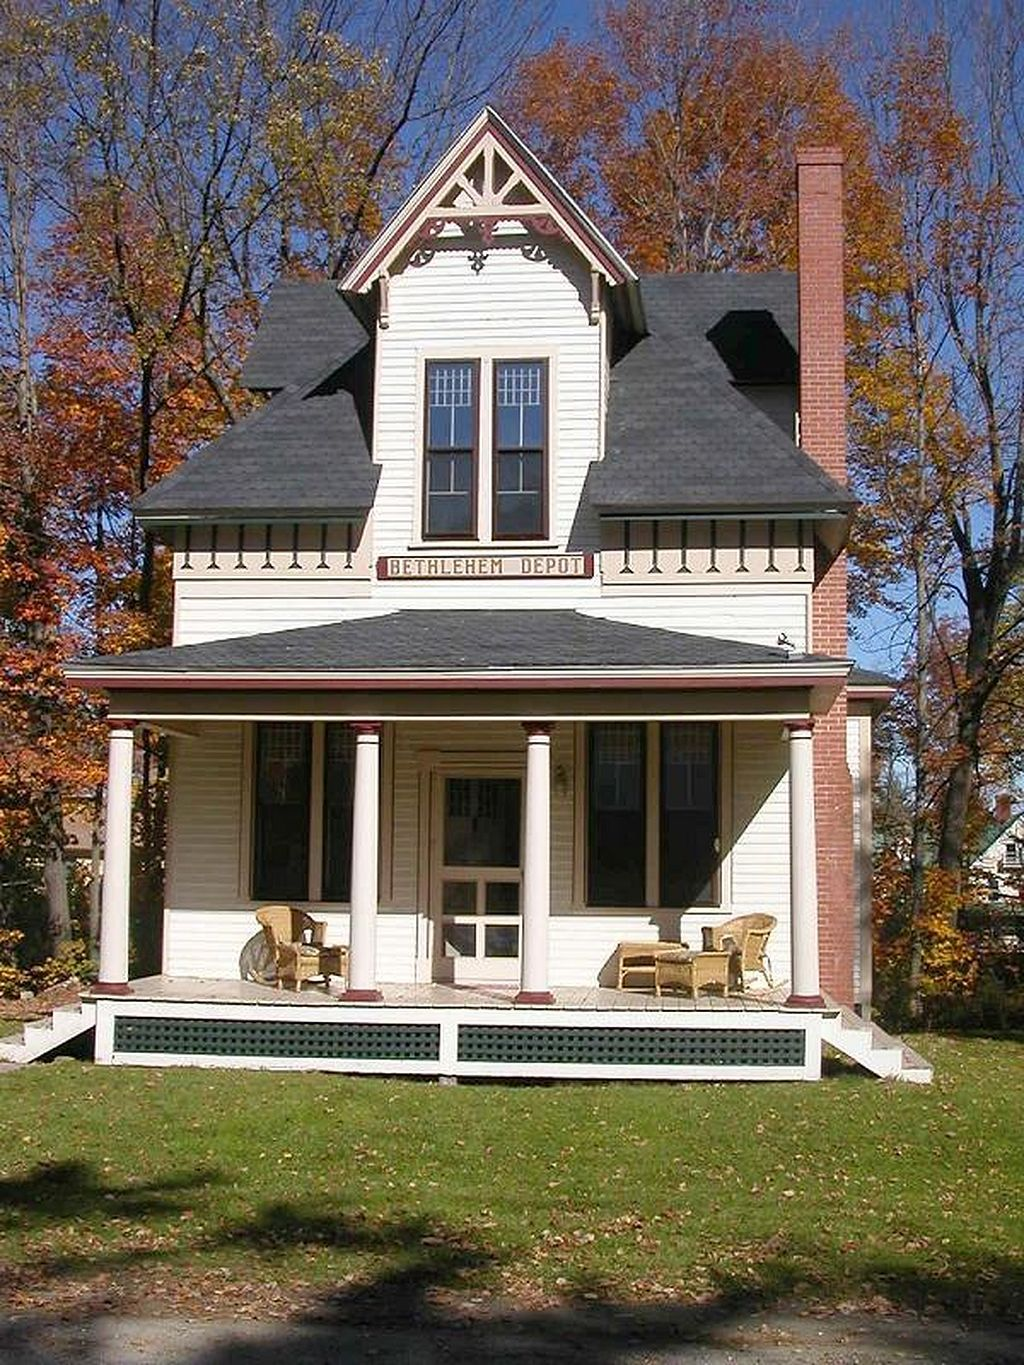 Gorgeous 25 Amazing Victorian Small House Ideas Https Hgmagz Com 25 Amazing Victorian Small House Ideas Small House House Victorian Homes